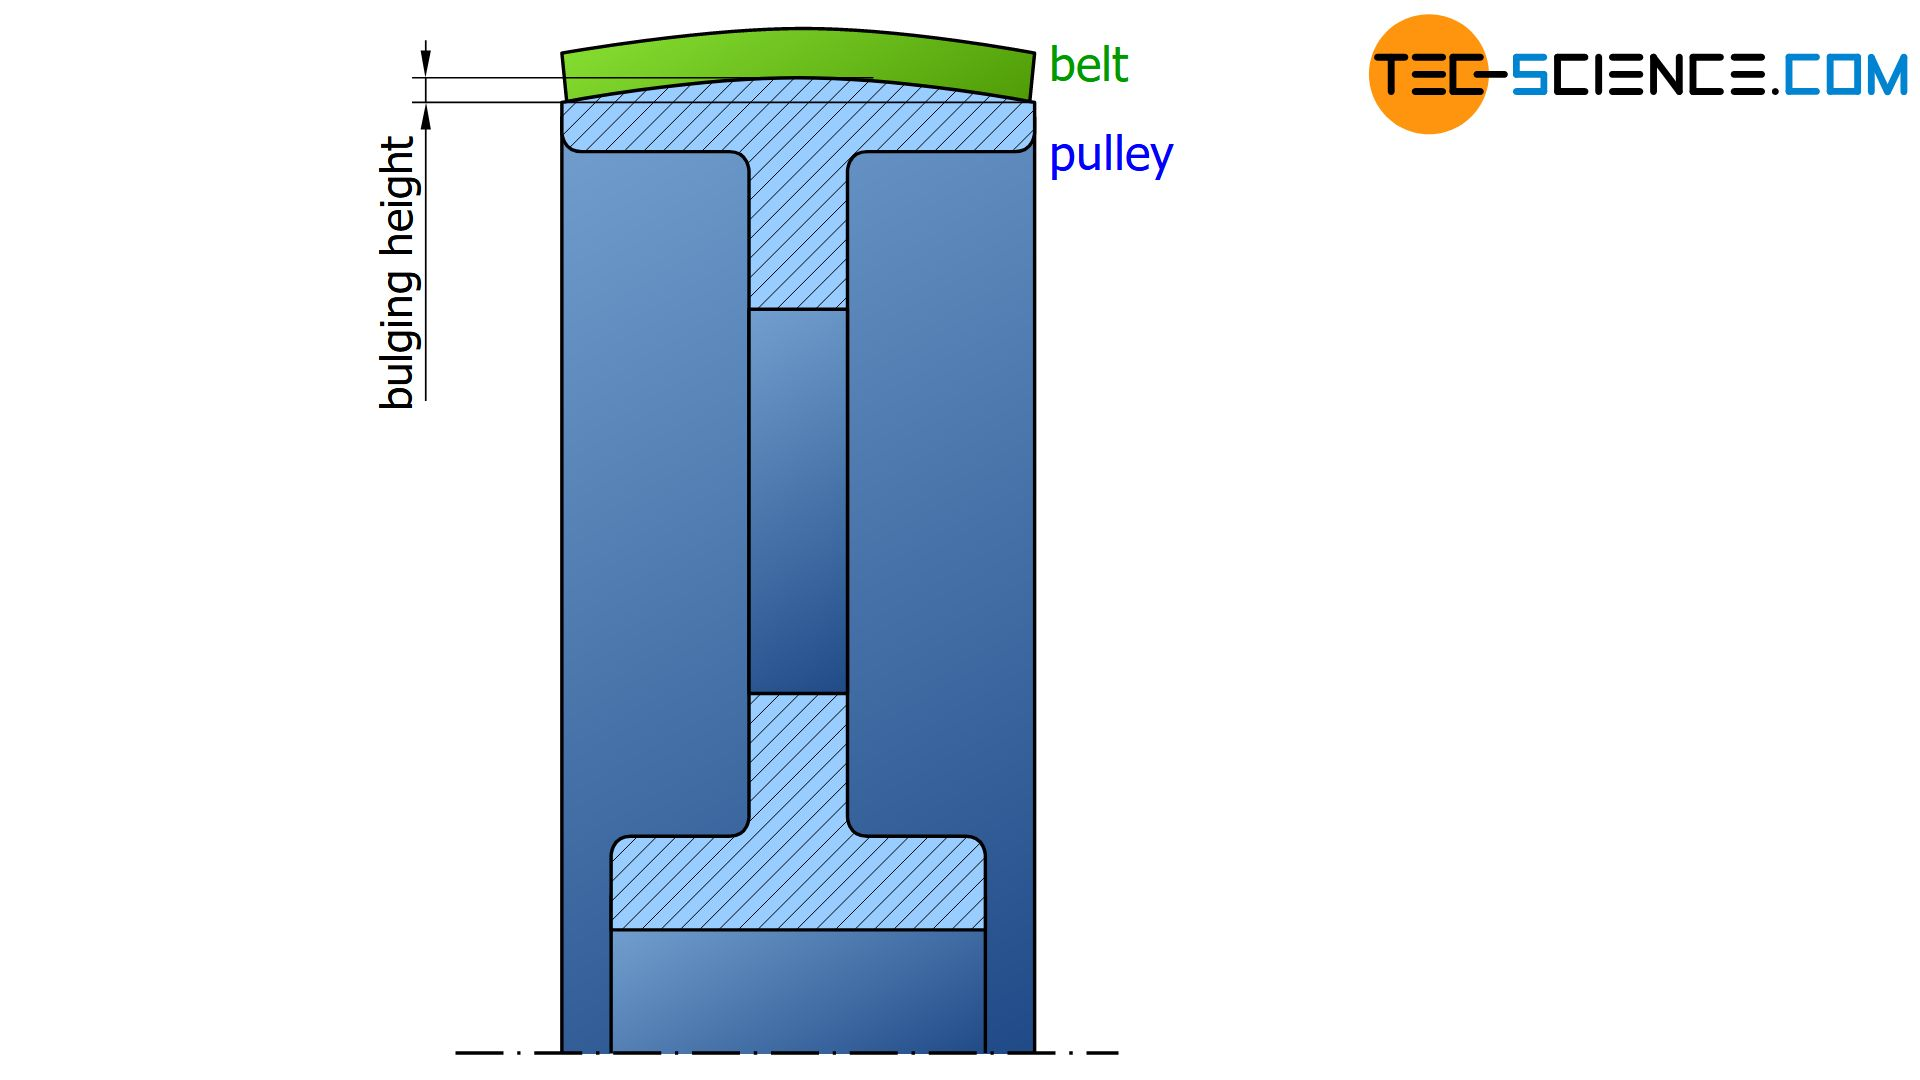 Pulley for flat belts